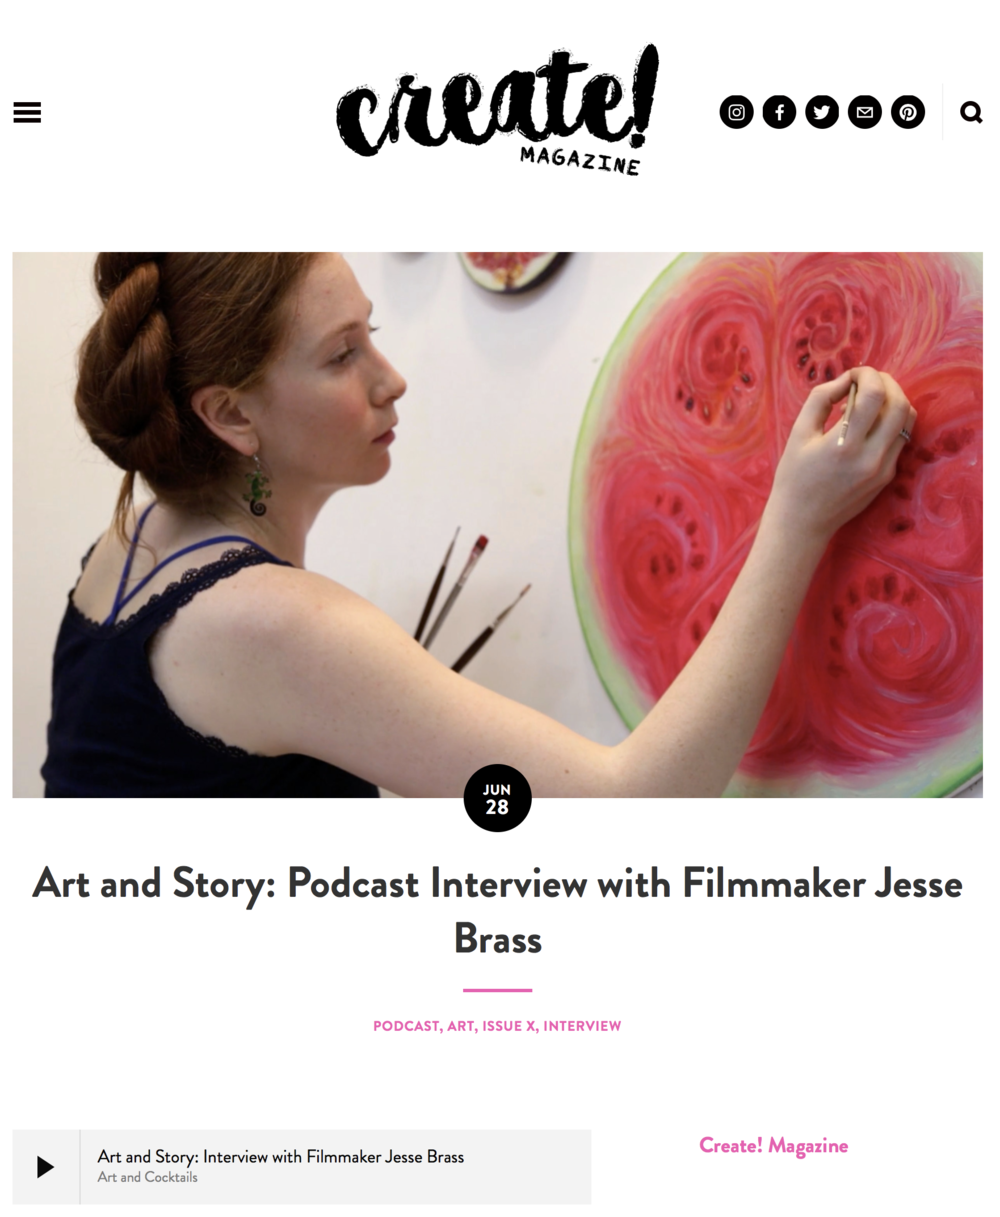 Art and Story: Podcast Interview with Filmmaker Jesse Brass